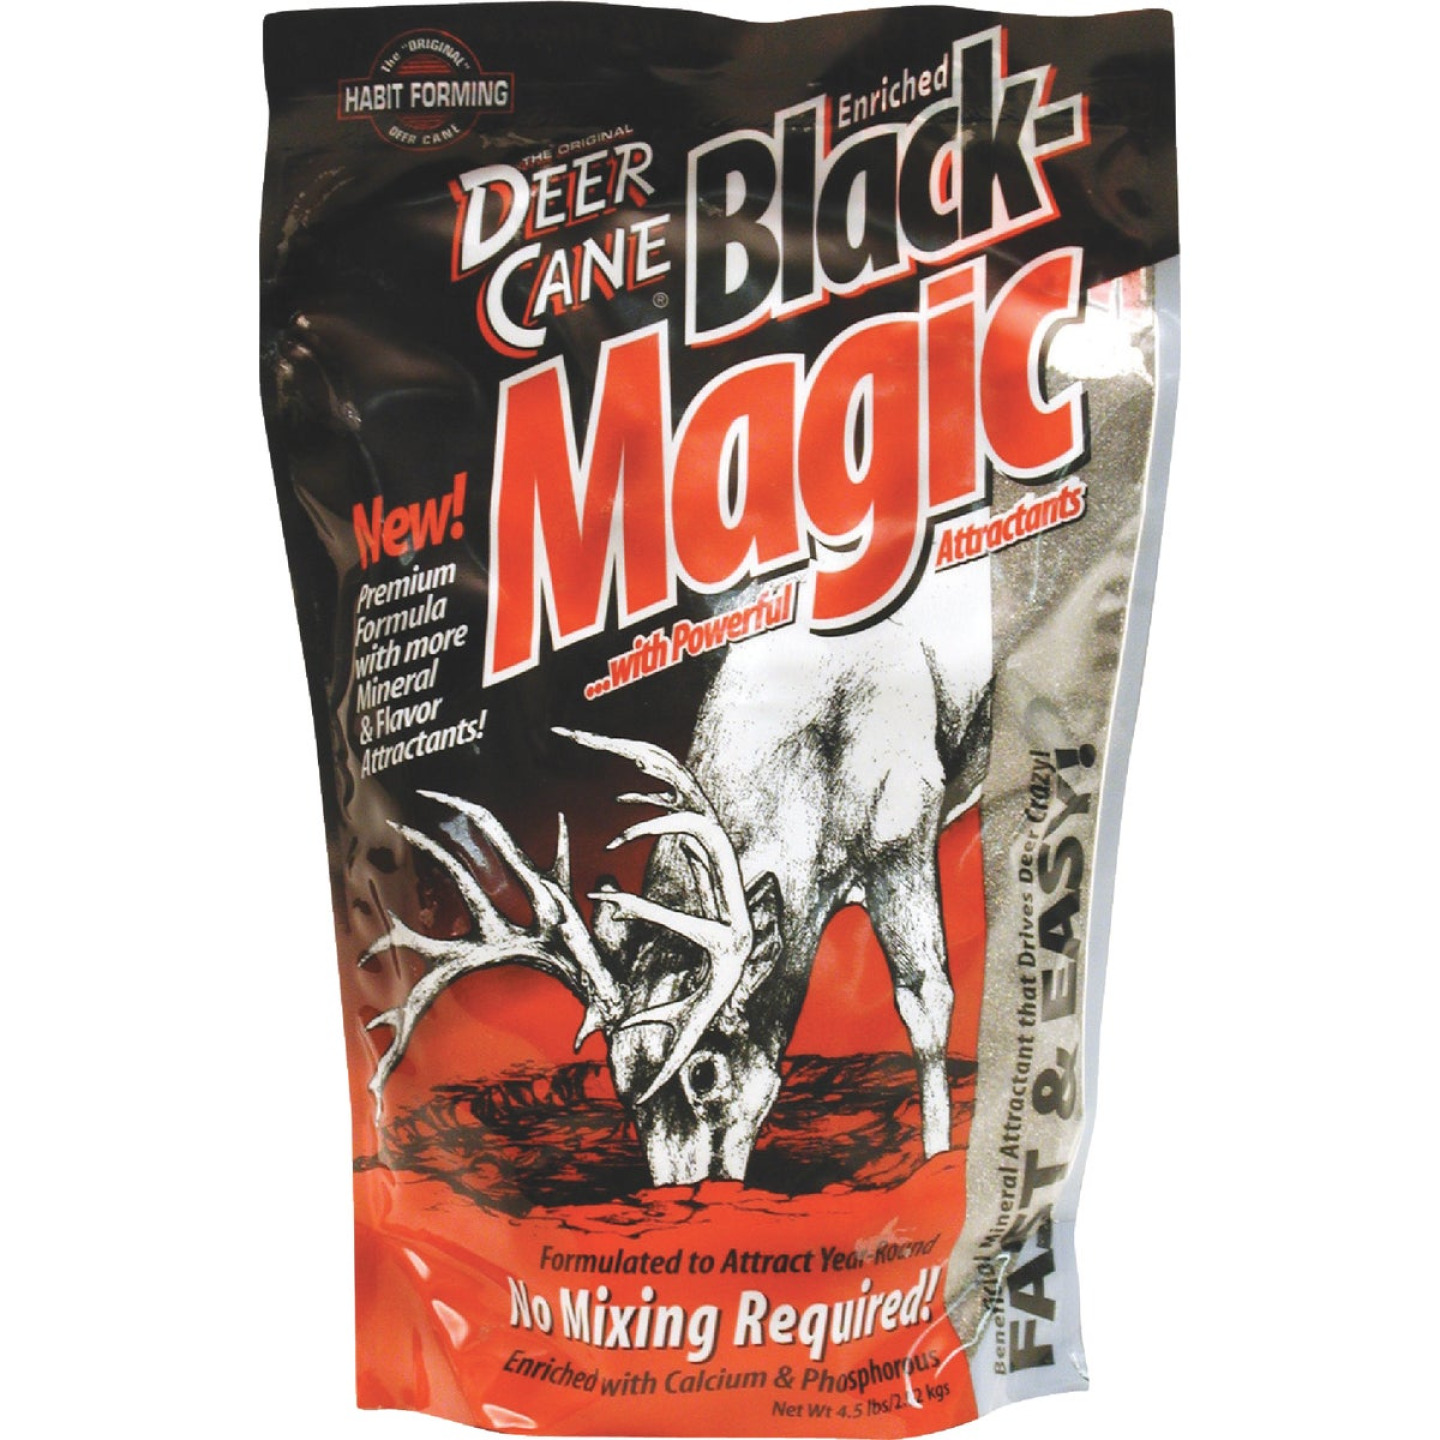 Deer Cane Black Magic 4-1/2 Lb. Granular Mineral Deer Attractant Image 1